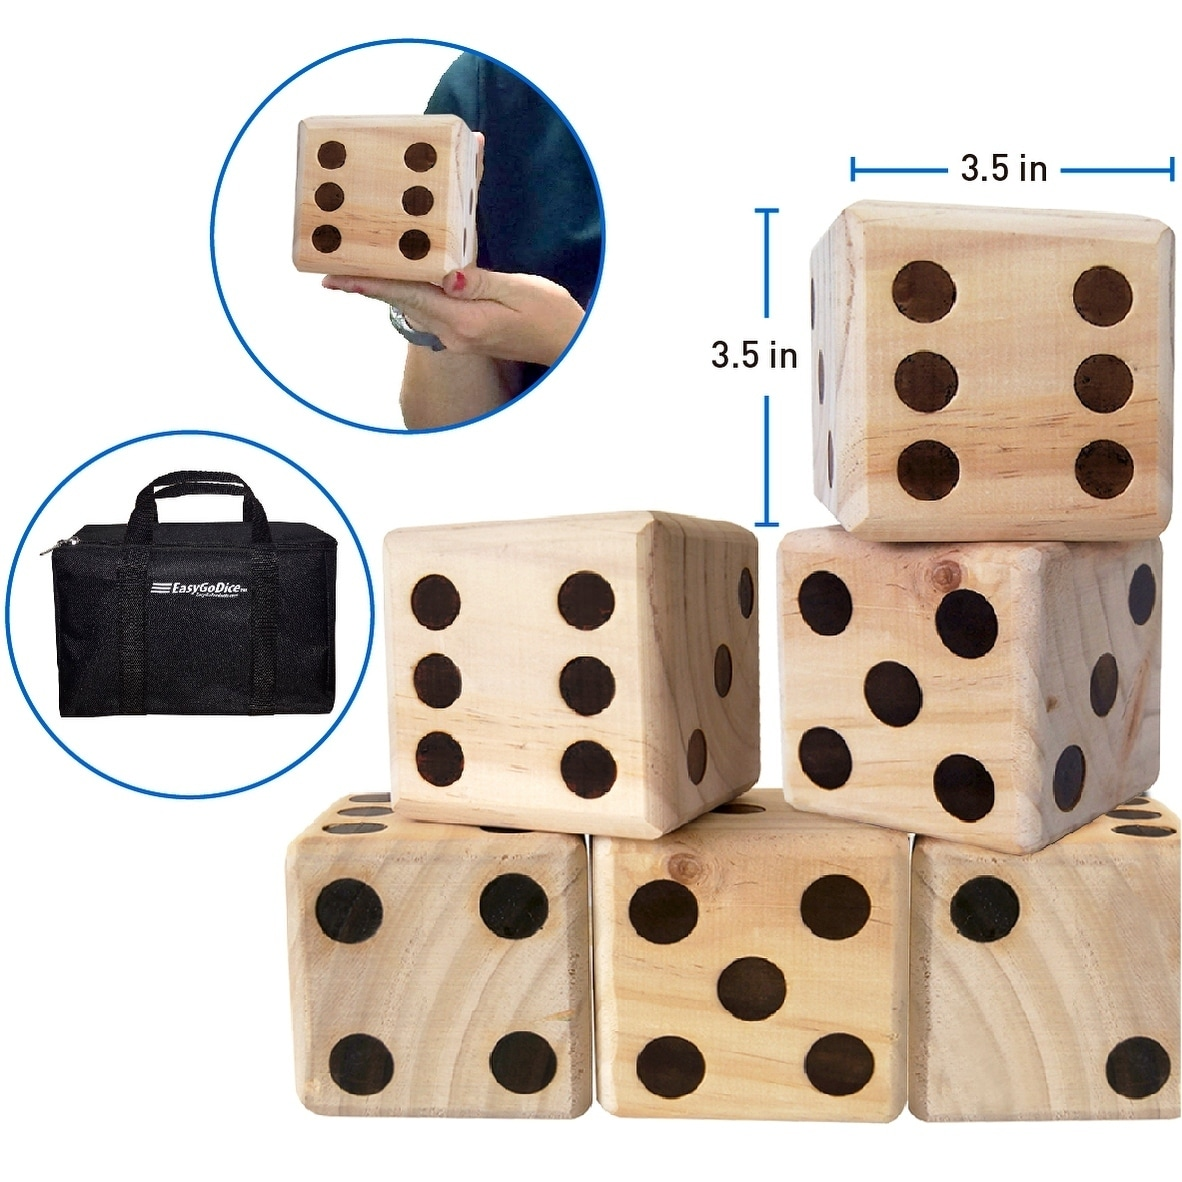 Large Dice Game Giant Wooden Yard Dice Set Dice With Bag Dice Games